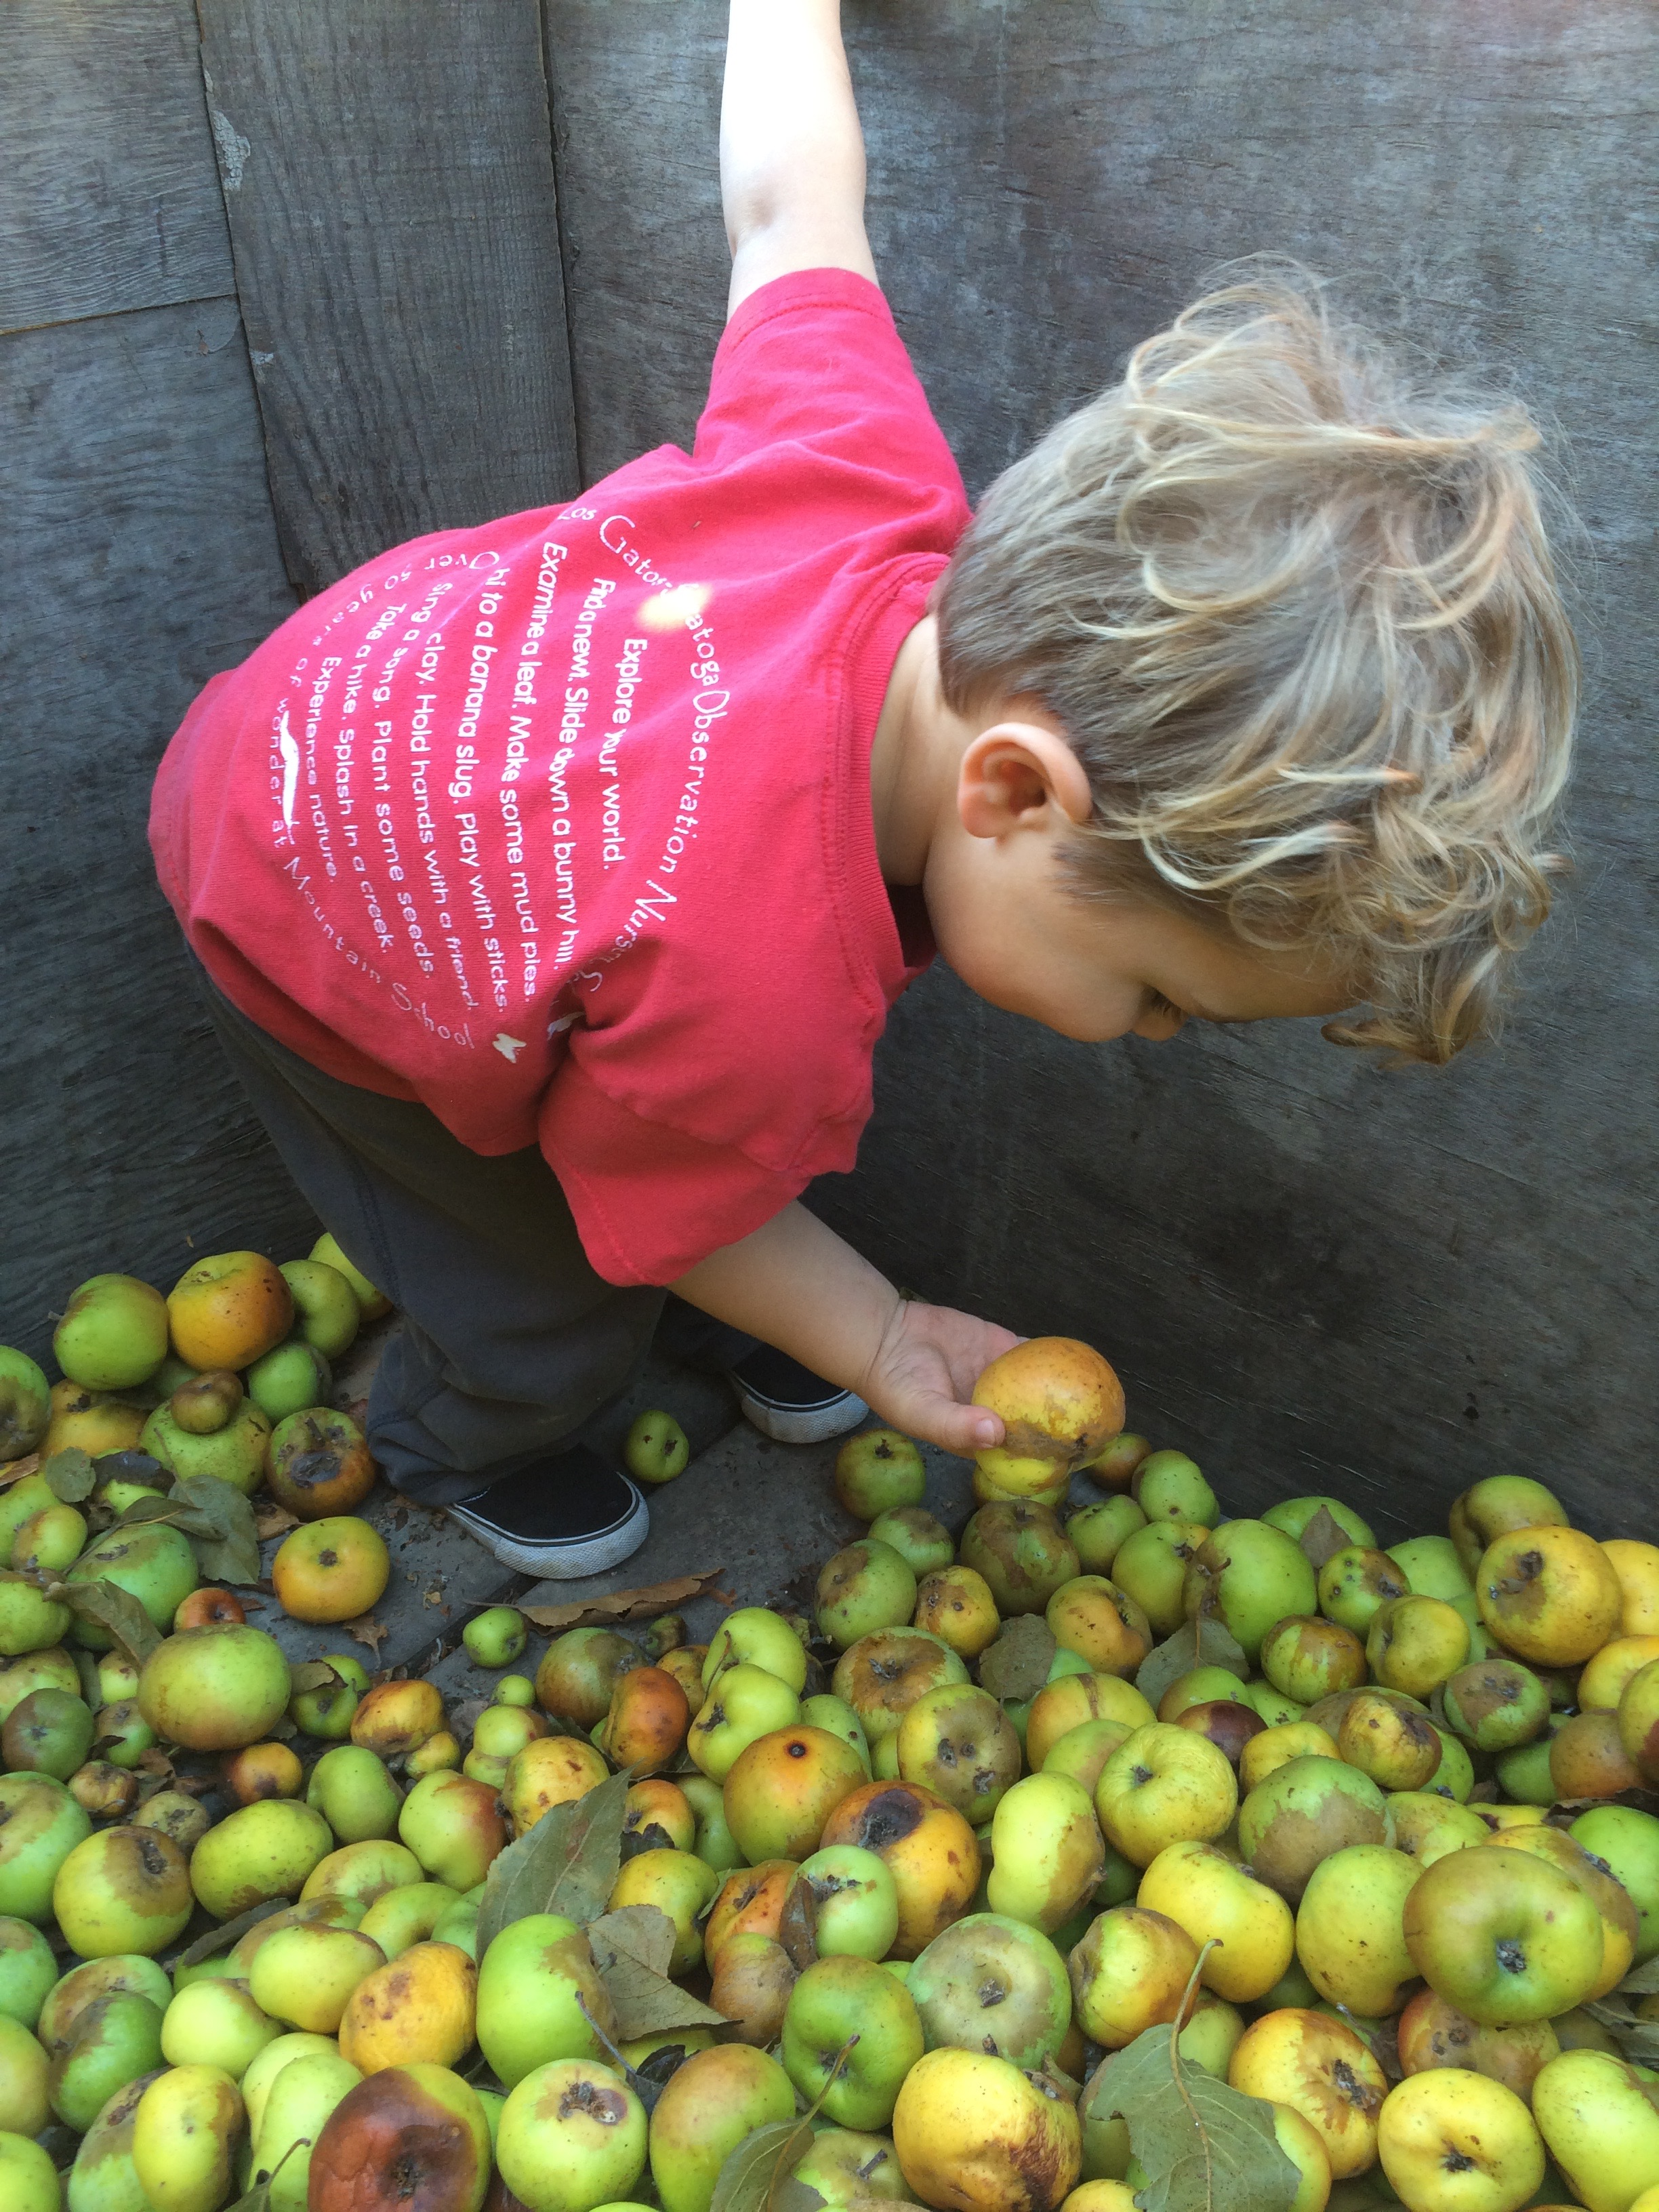 Grading apples in the orchard